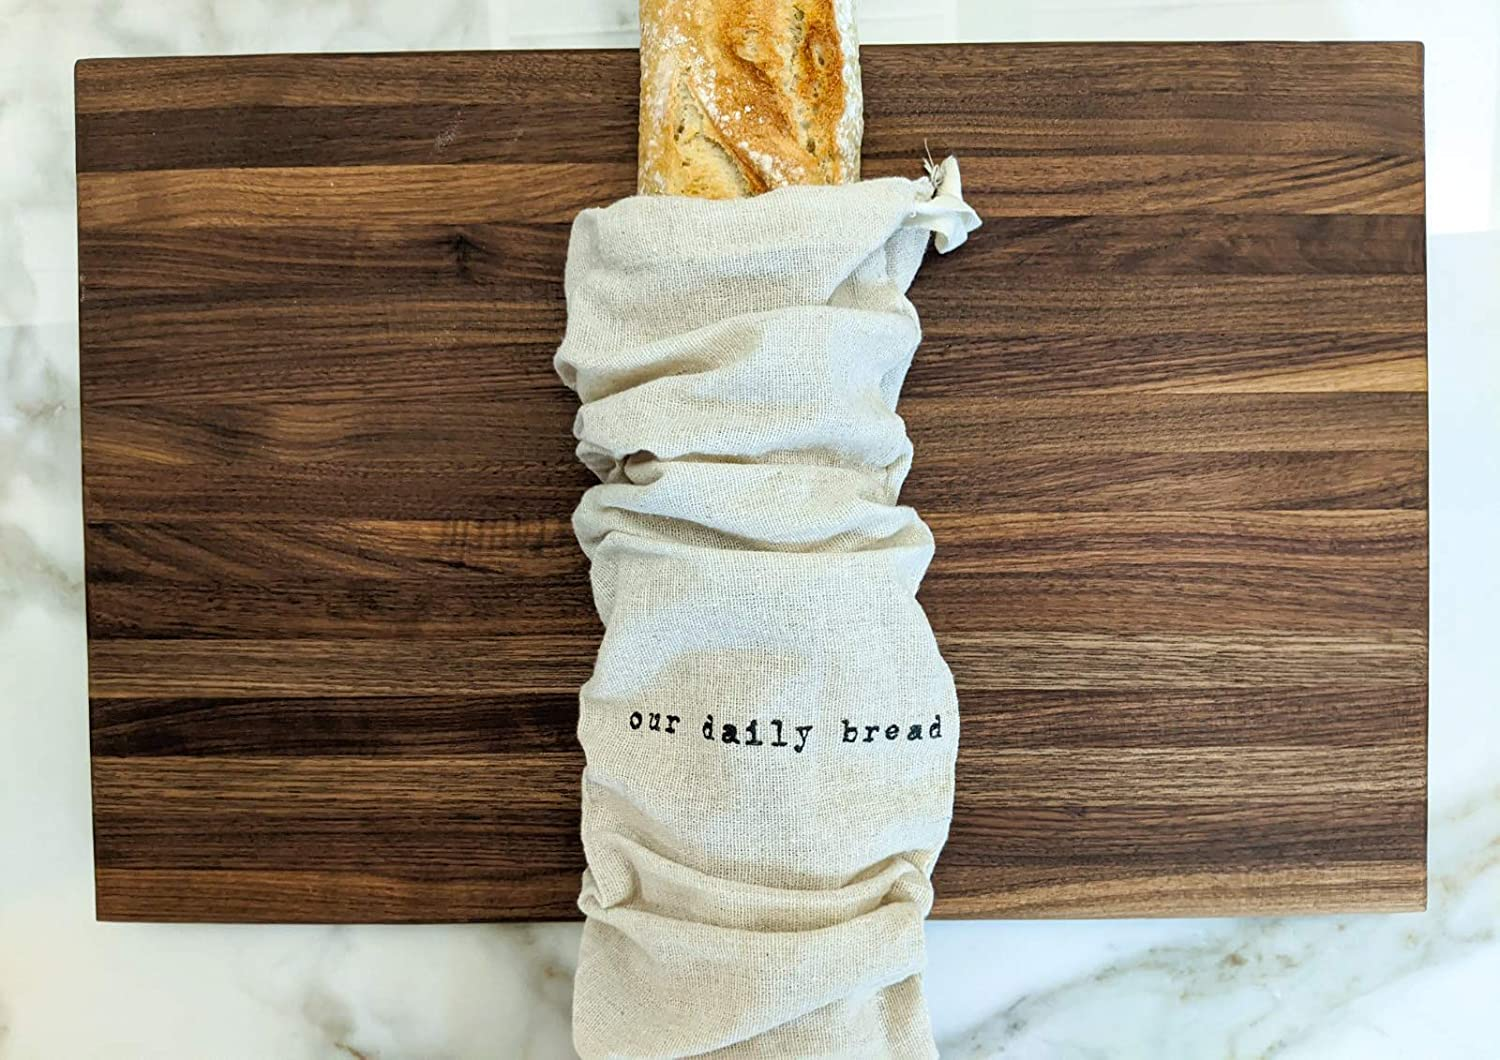 Montecito Home Set of 2 Natural Linen Bread Bags (1 Boule &1 Baguette), Reusable Drawstring Bag Homemade Bread Storage, Perfect for Bakers, House Warming,